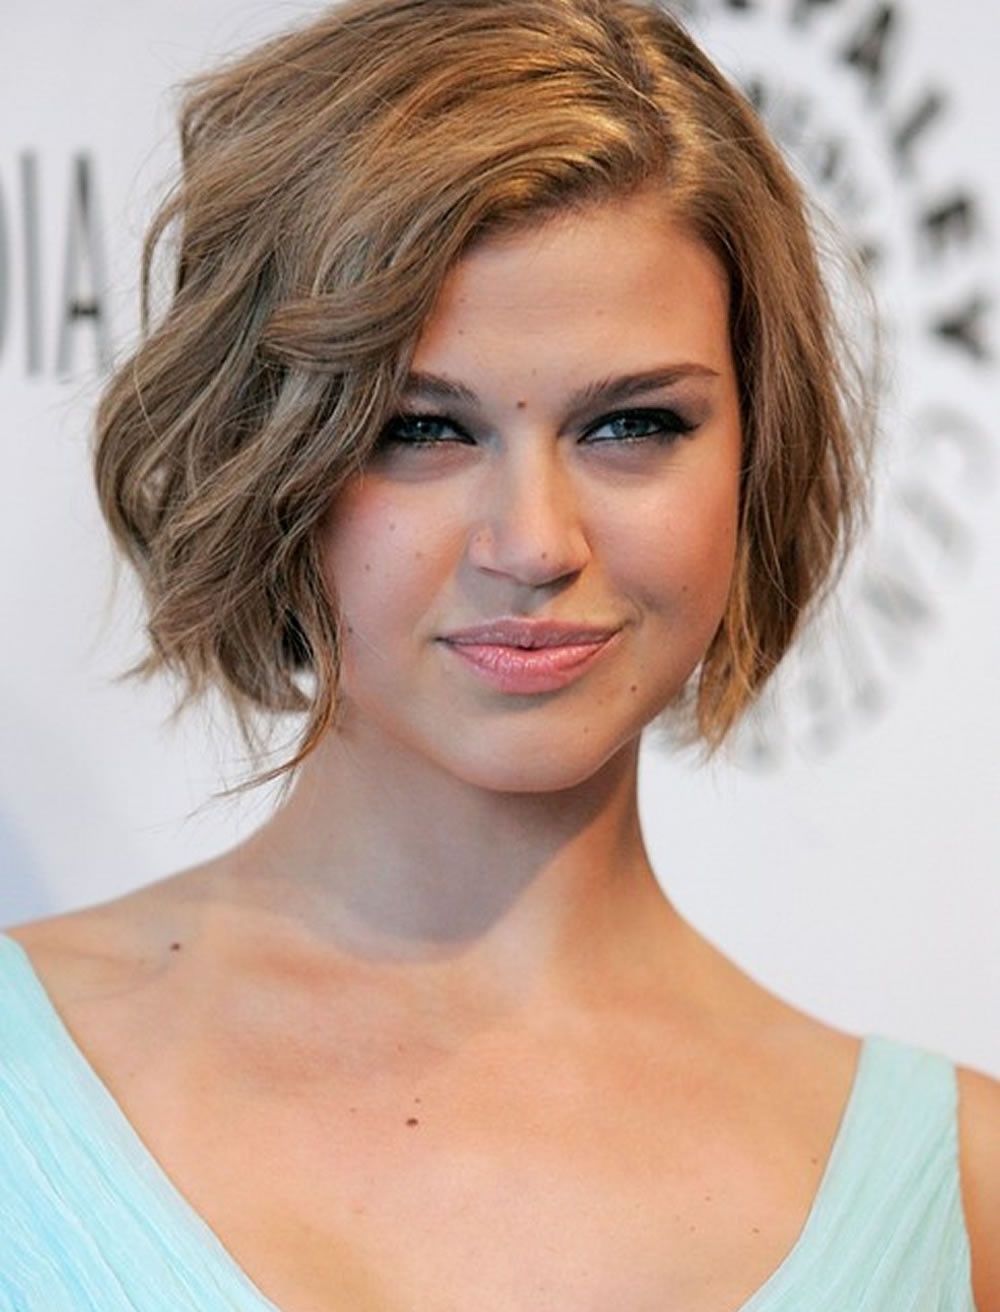 Best ideas about Bobs Haircuts . Save or Pin The Best 33 Short Bob Haircuts – 2019 Short Hairstyles for Now.